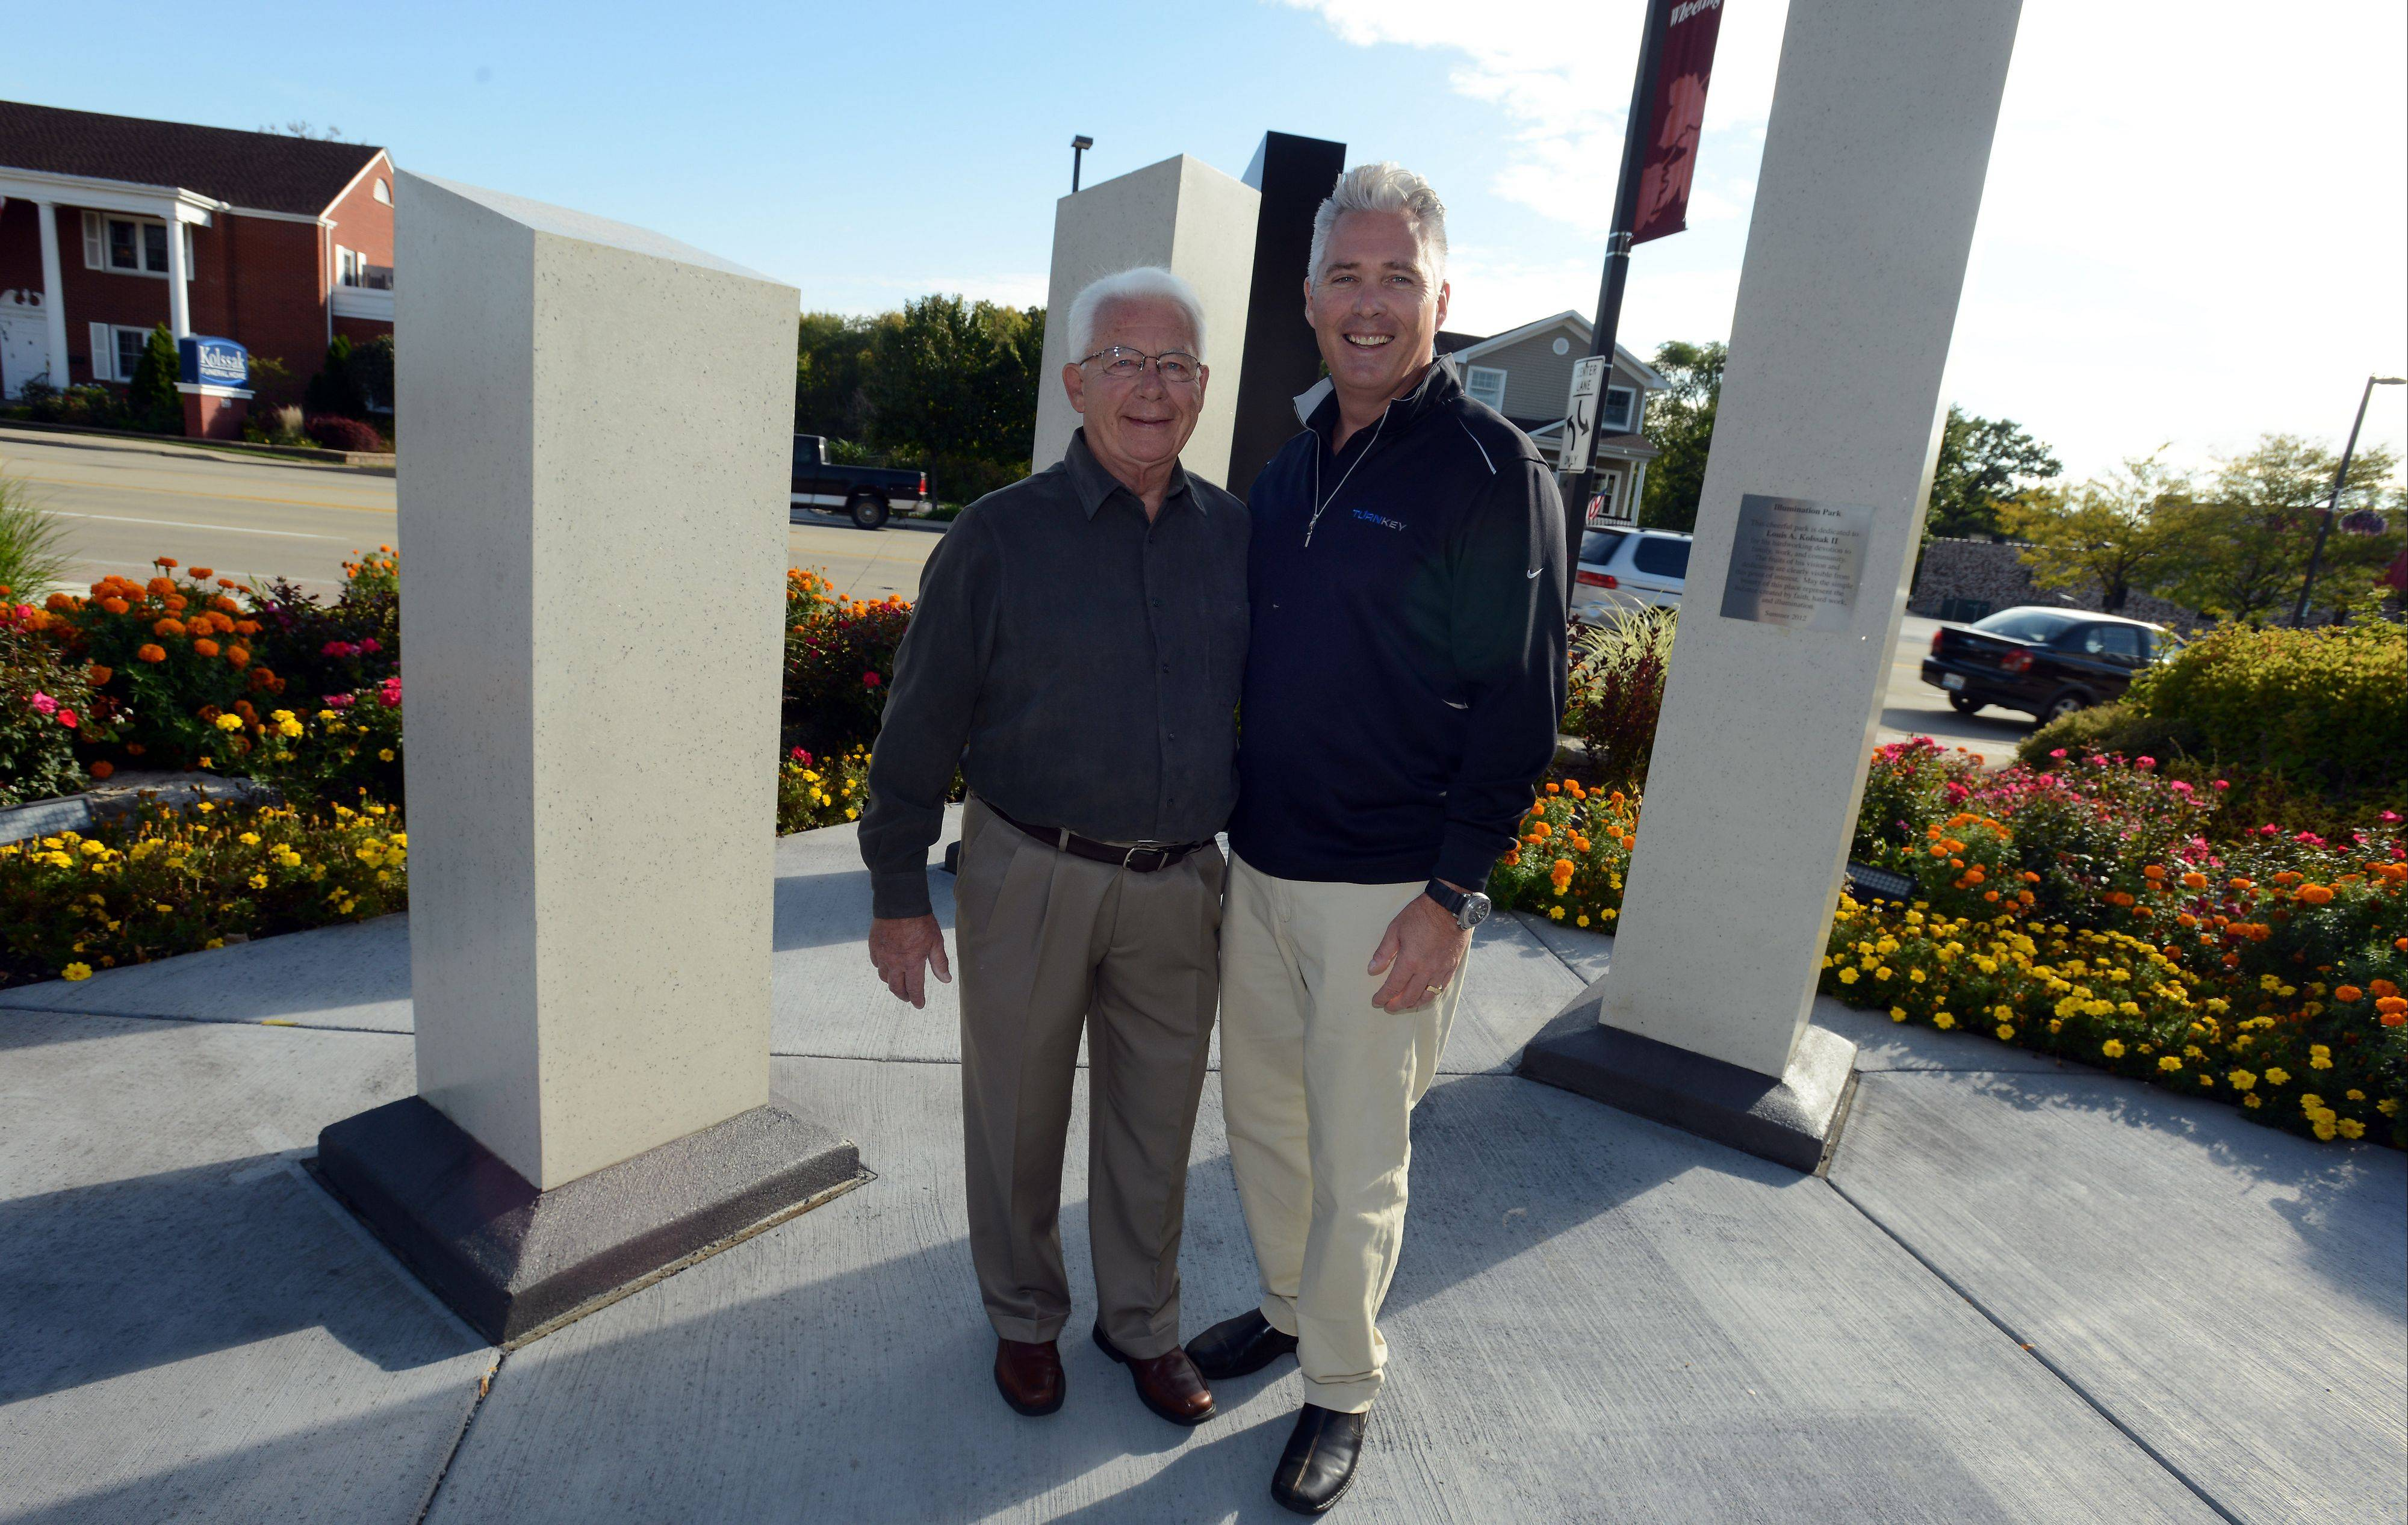 David Kolssak, right, built Illumination Park with the help of Wheeling tax increment financing funds and dedicated it to his father, Louis Kolssak II.